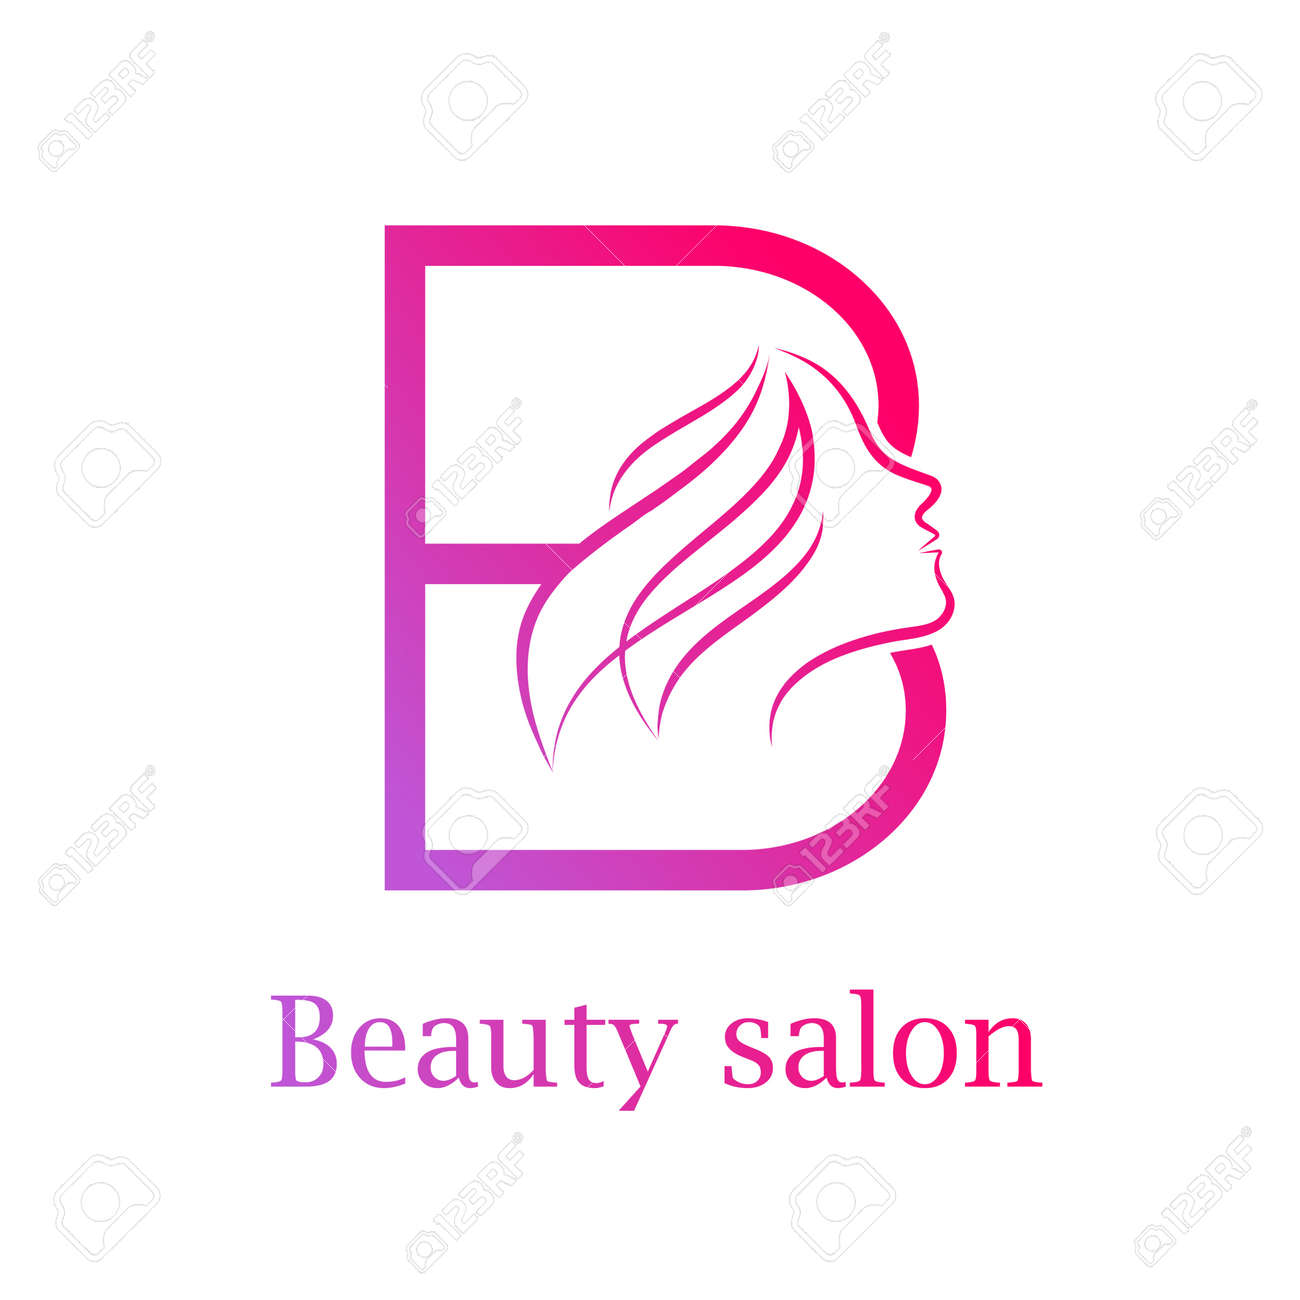 Abstract Letter B Logo Beauty Salon Logo Design Template Royalty Free Cliparts Vectors And Stock Illustration Image 84732281